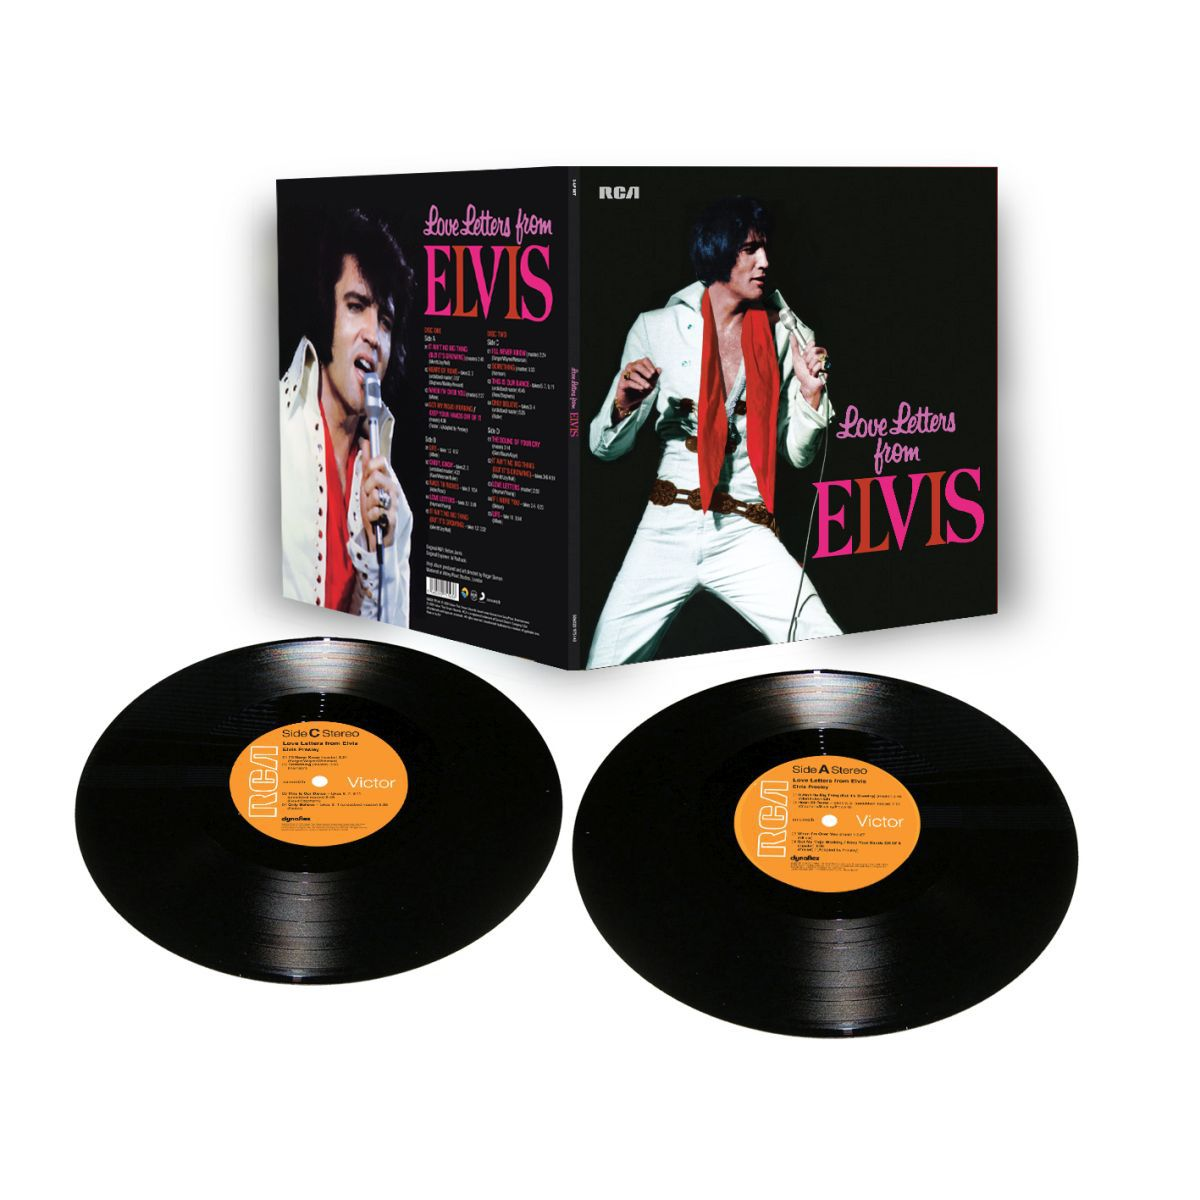 Love Letters From Elvis FTD Limited Edition Vinyl (2 LP)